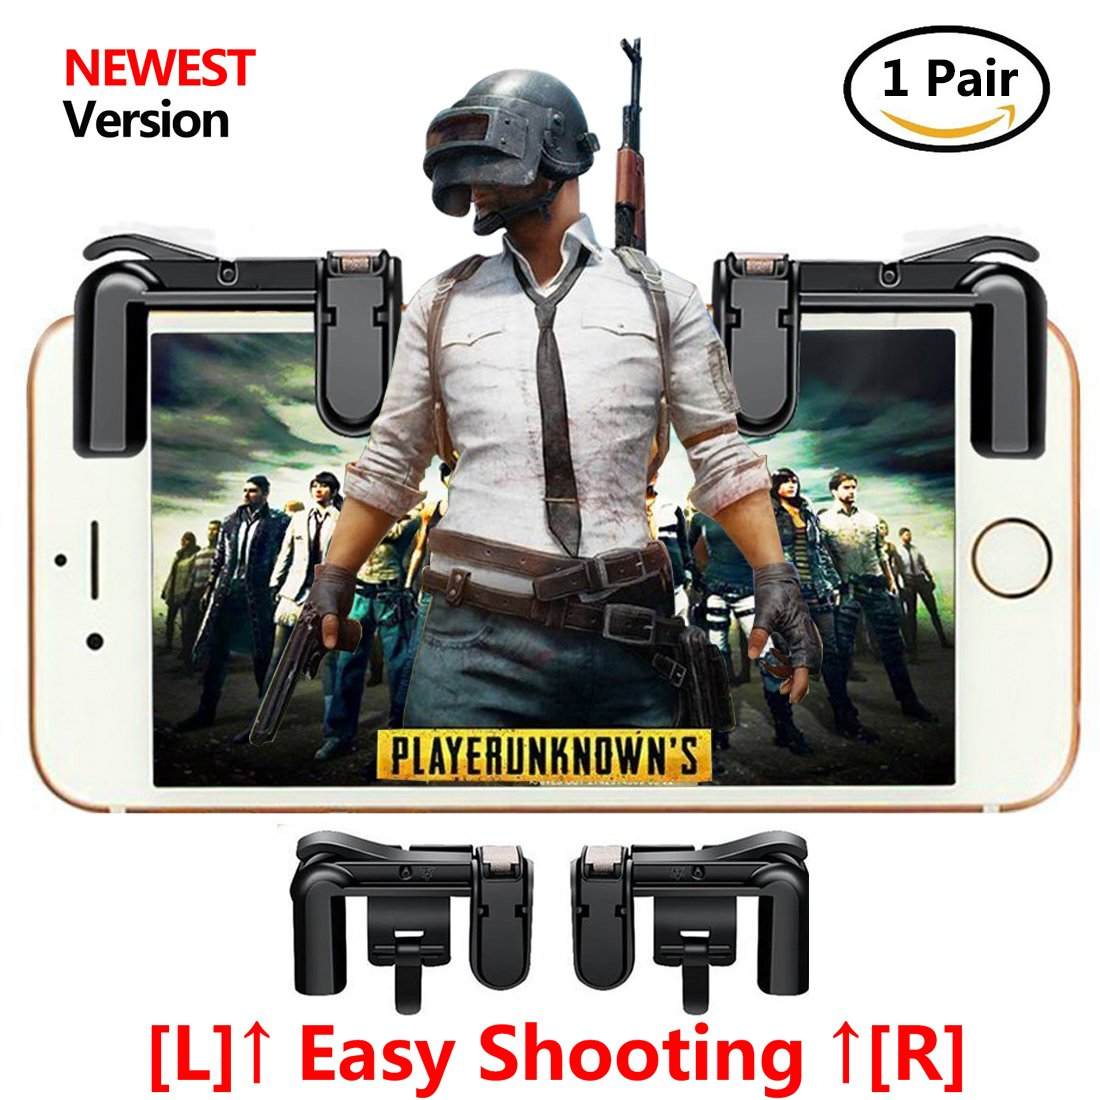 Upgraded Version Mobile Game Controller Hlg Sensitive L1 R1 Sharp Shooter Pubg Joystick Rule Of Survival Versi 3 Shoot And Aim Buttons L1r1 For Fortnite Rules Survial Cell Phone Gams